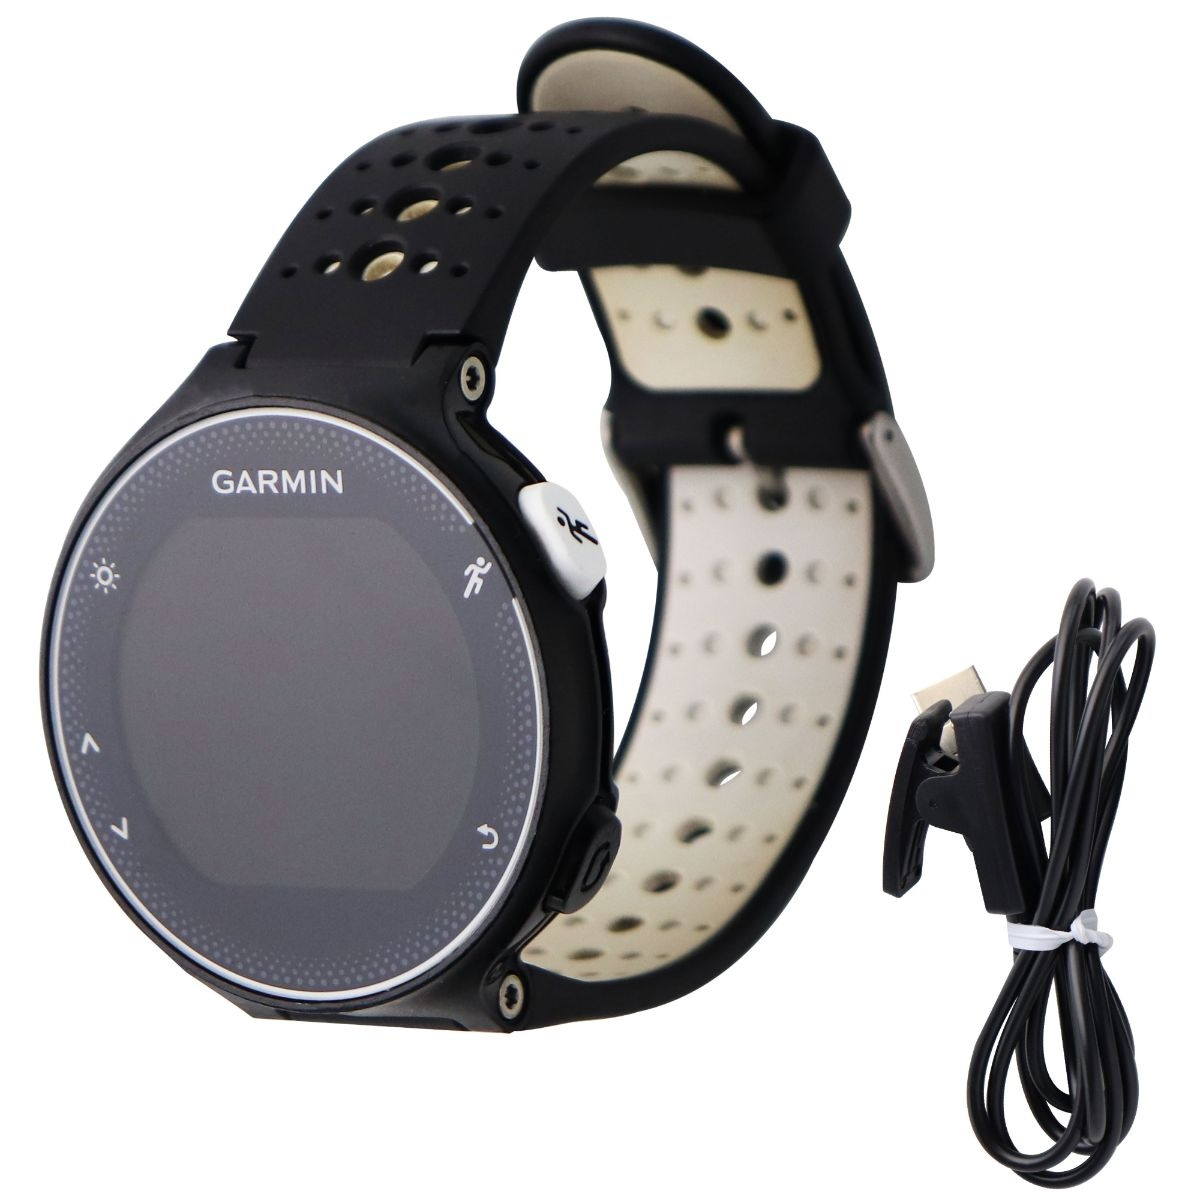 Garmin Forerunner 230 Performance GPS Running Watch - Black / White